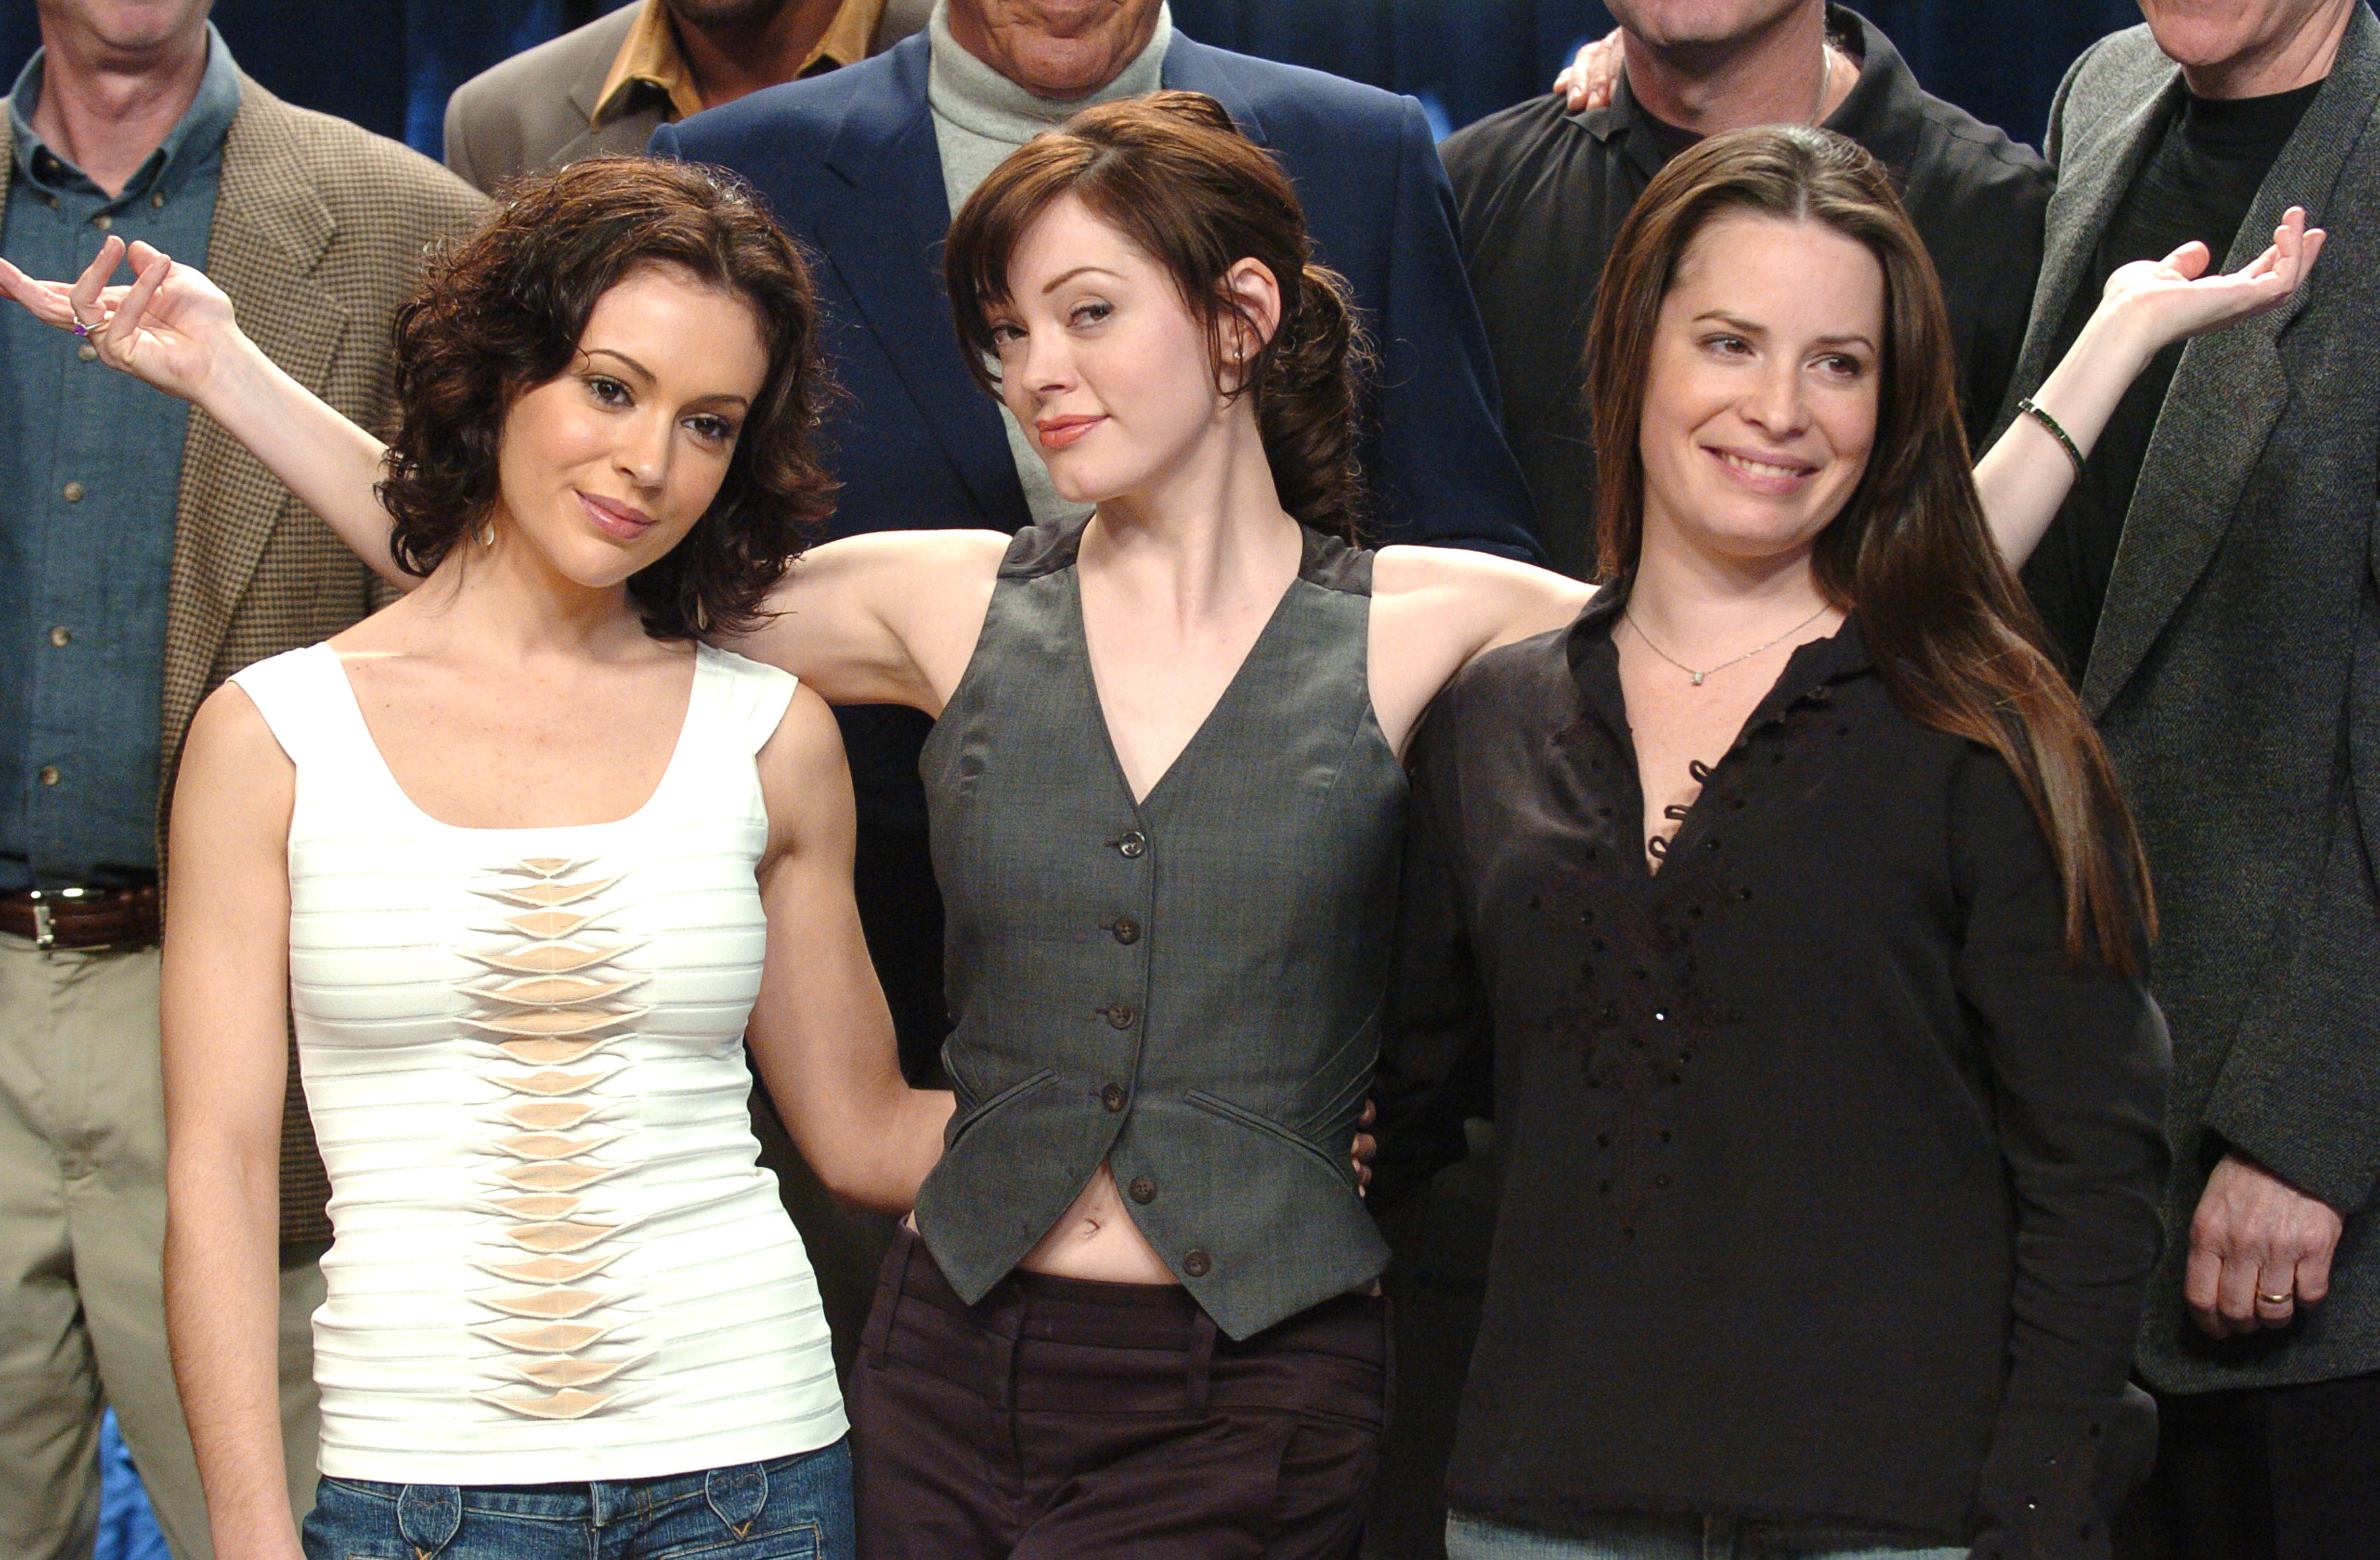 'Charmed' Celebrates 150 Episodes and First Season on DVD